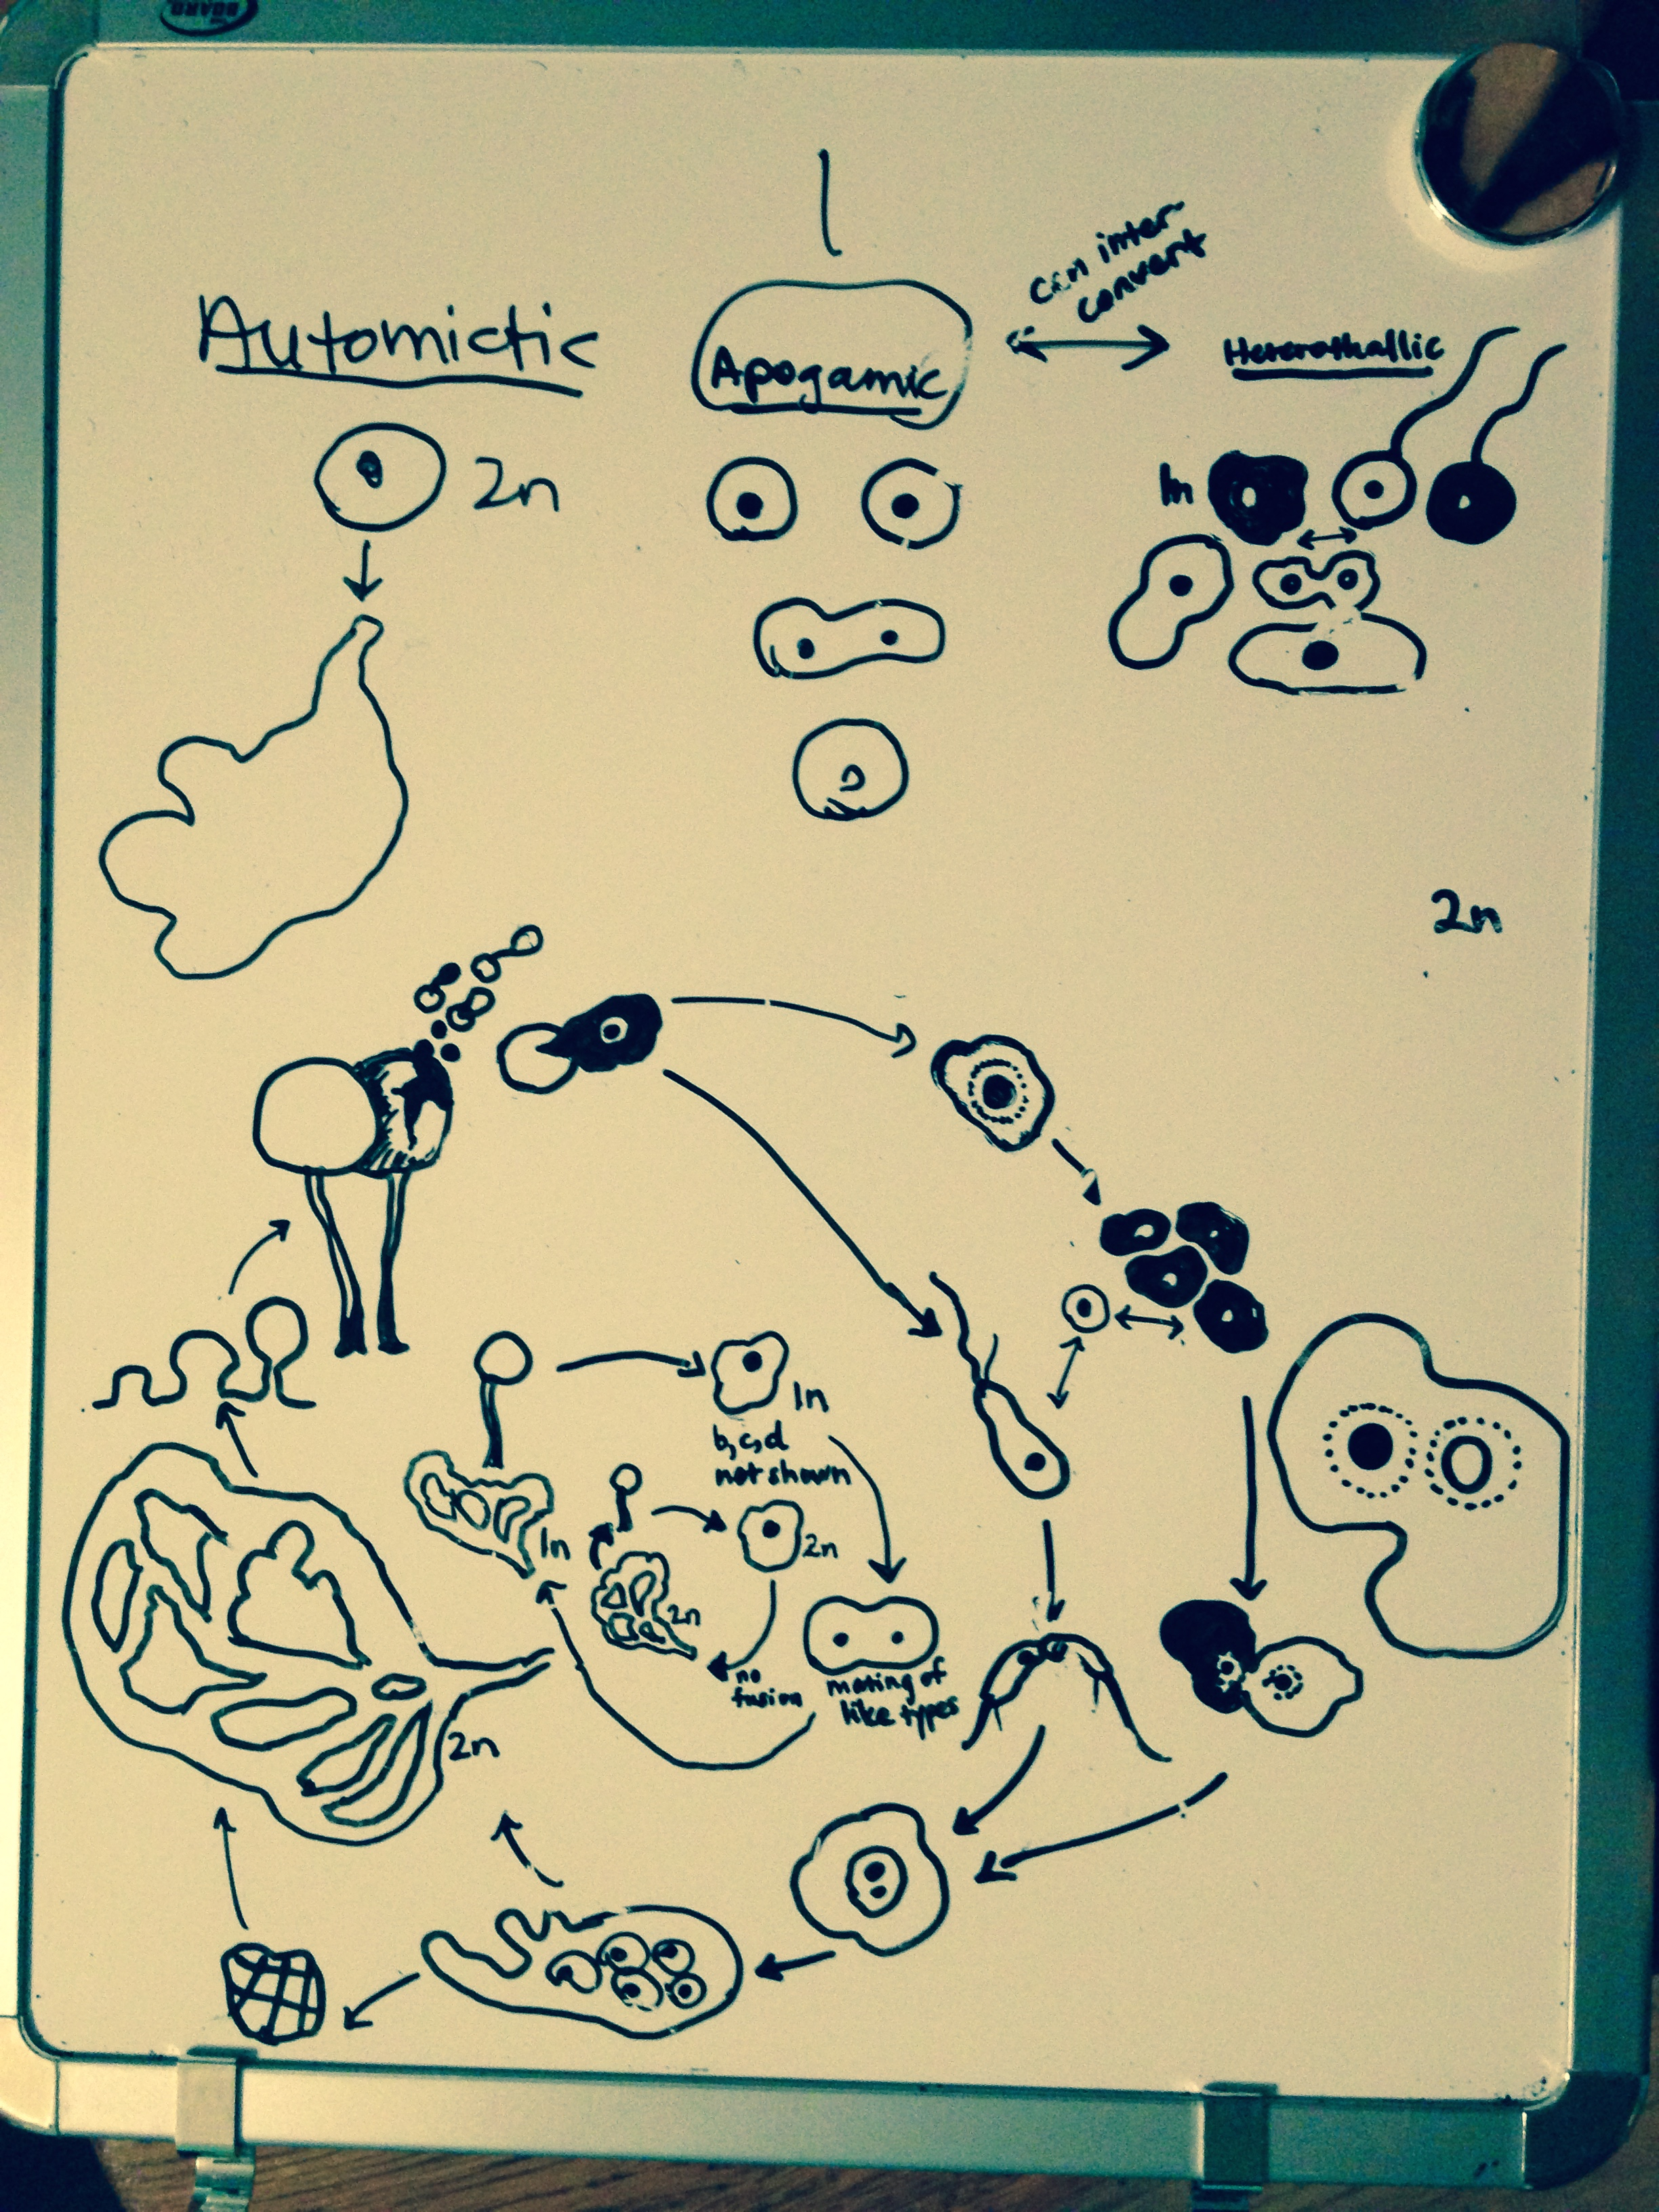 Slime Mold Life Cycle concept sketch, presented via Skype to my friend / biologist Laura Walker.